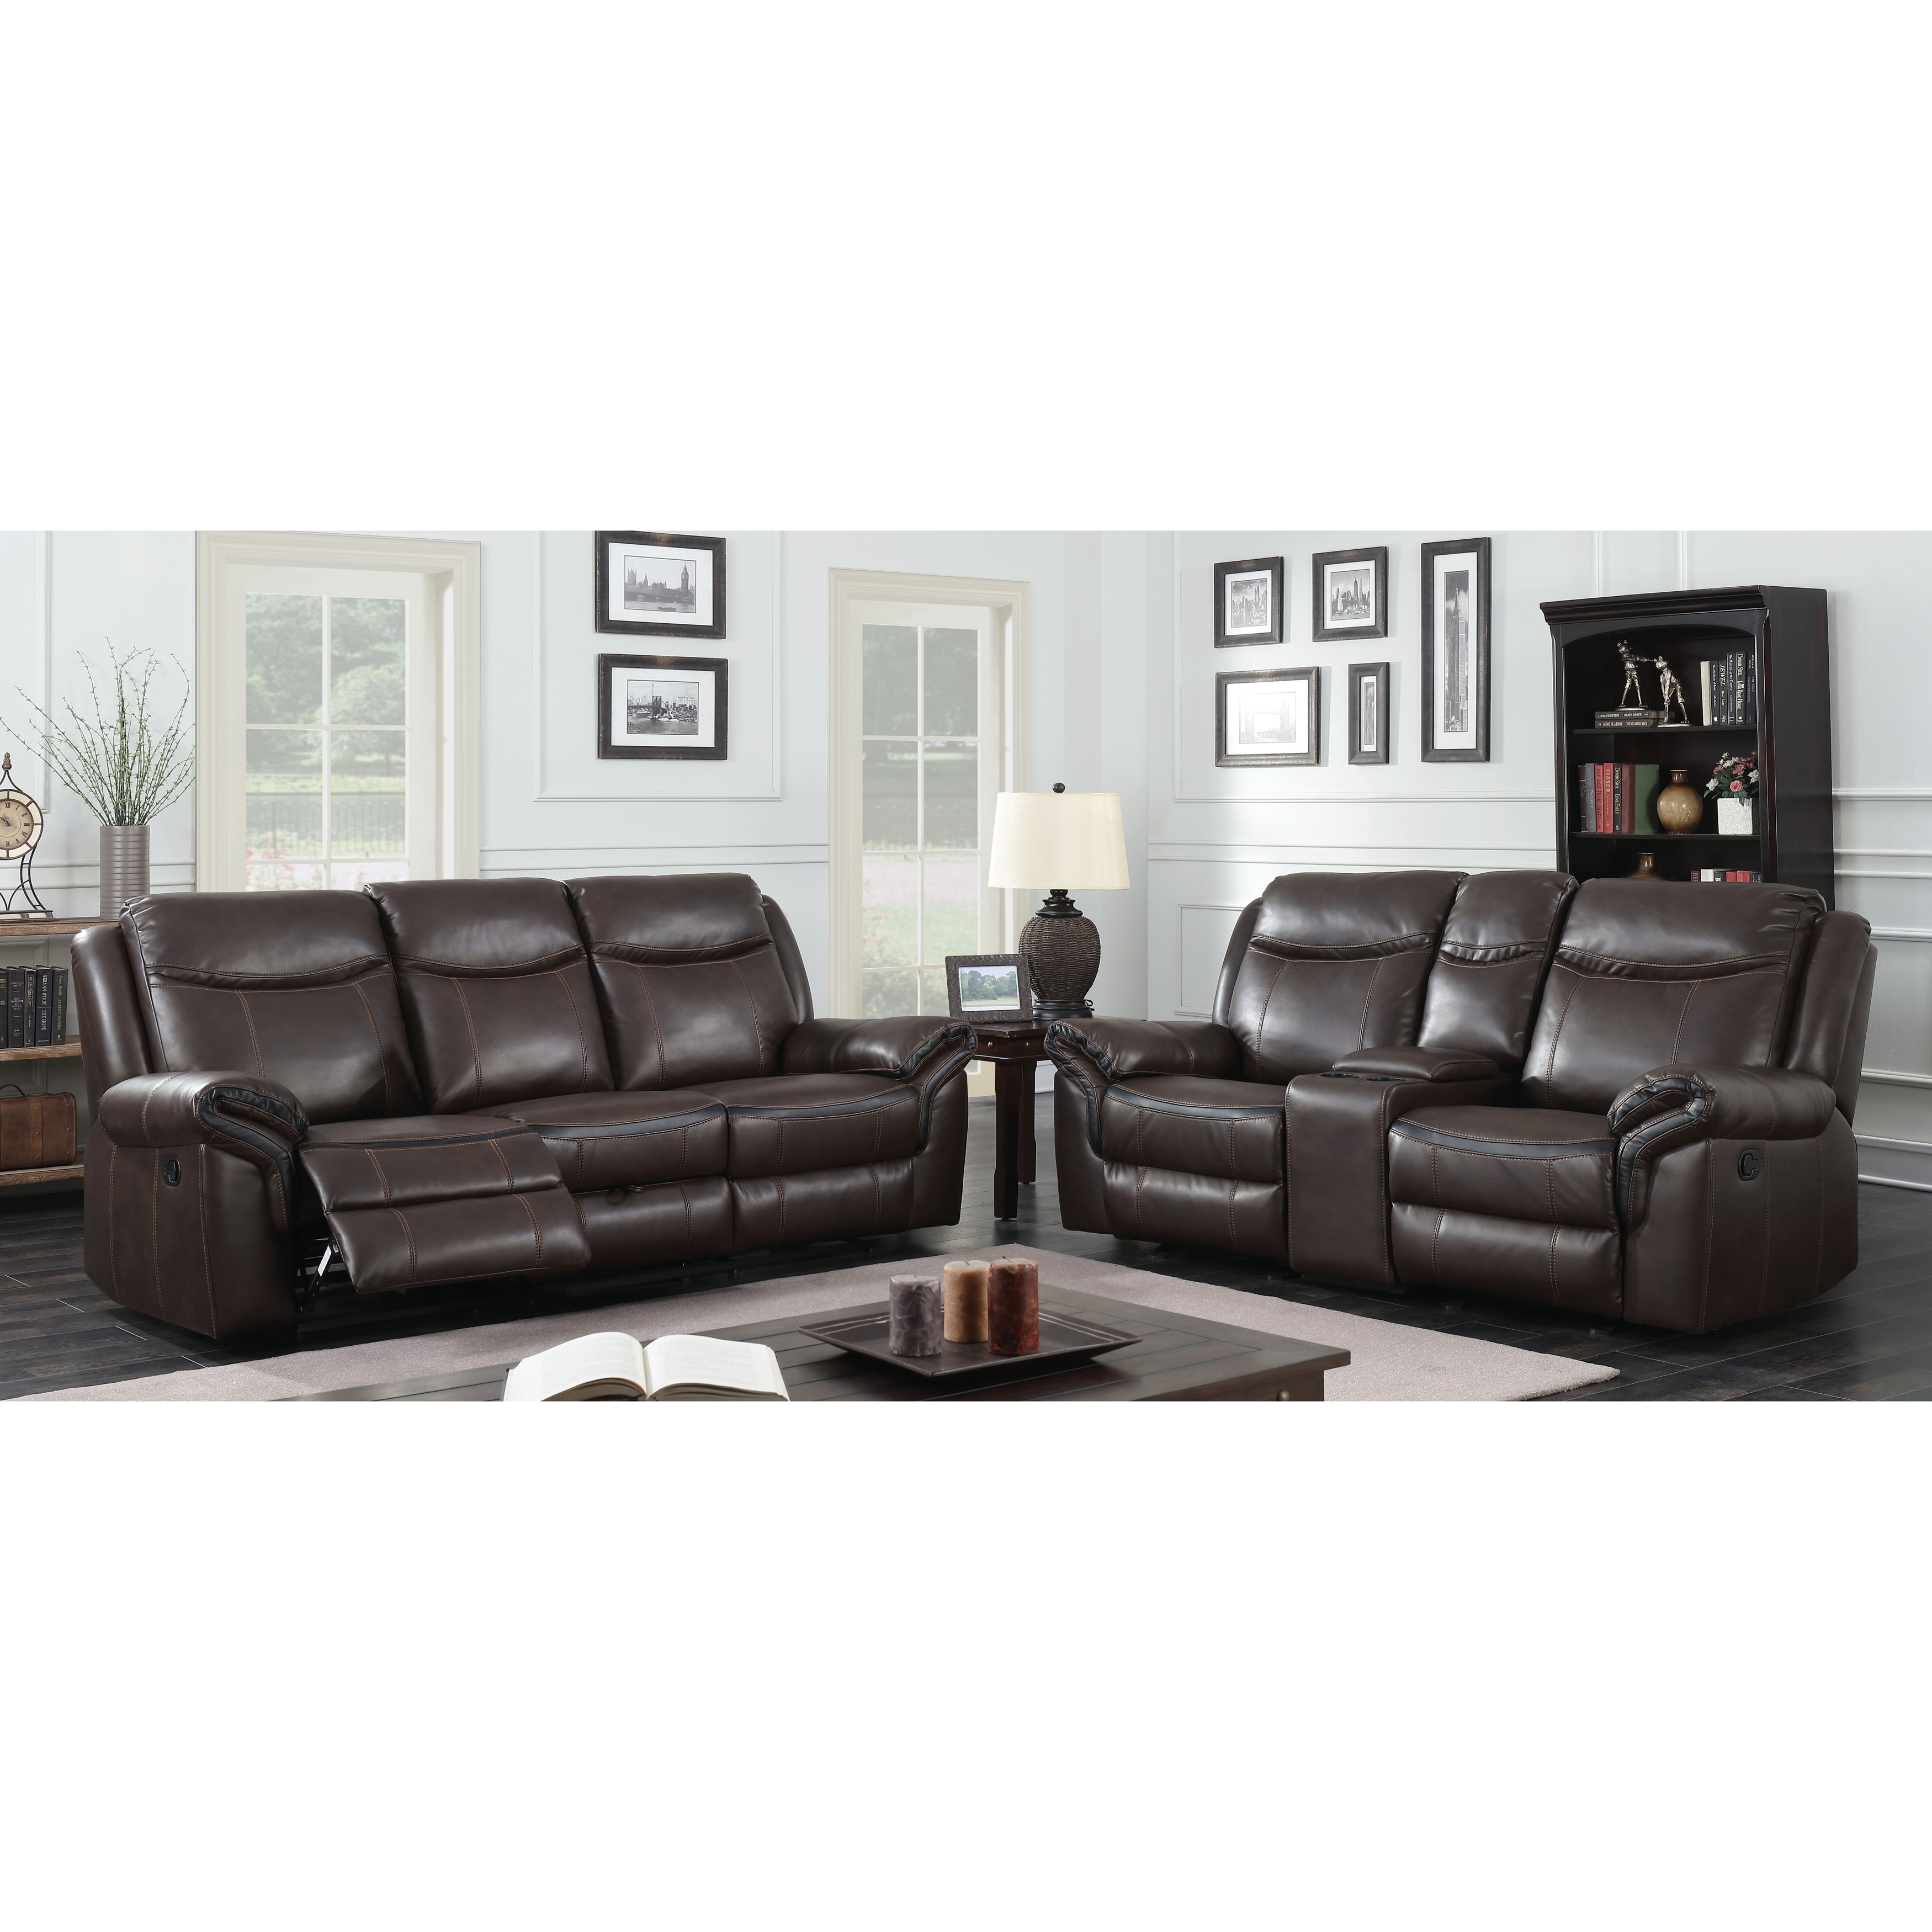 Awesome Jefferson Transitional Brown 3 Piece Reclining Sofa Set By Foa Machost Co Dining Chair Design Ideas Machostcouk